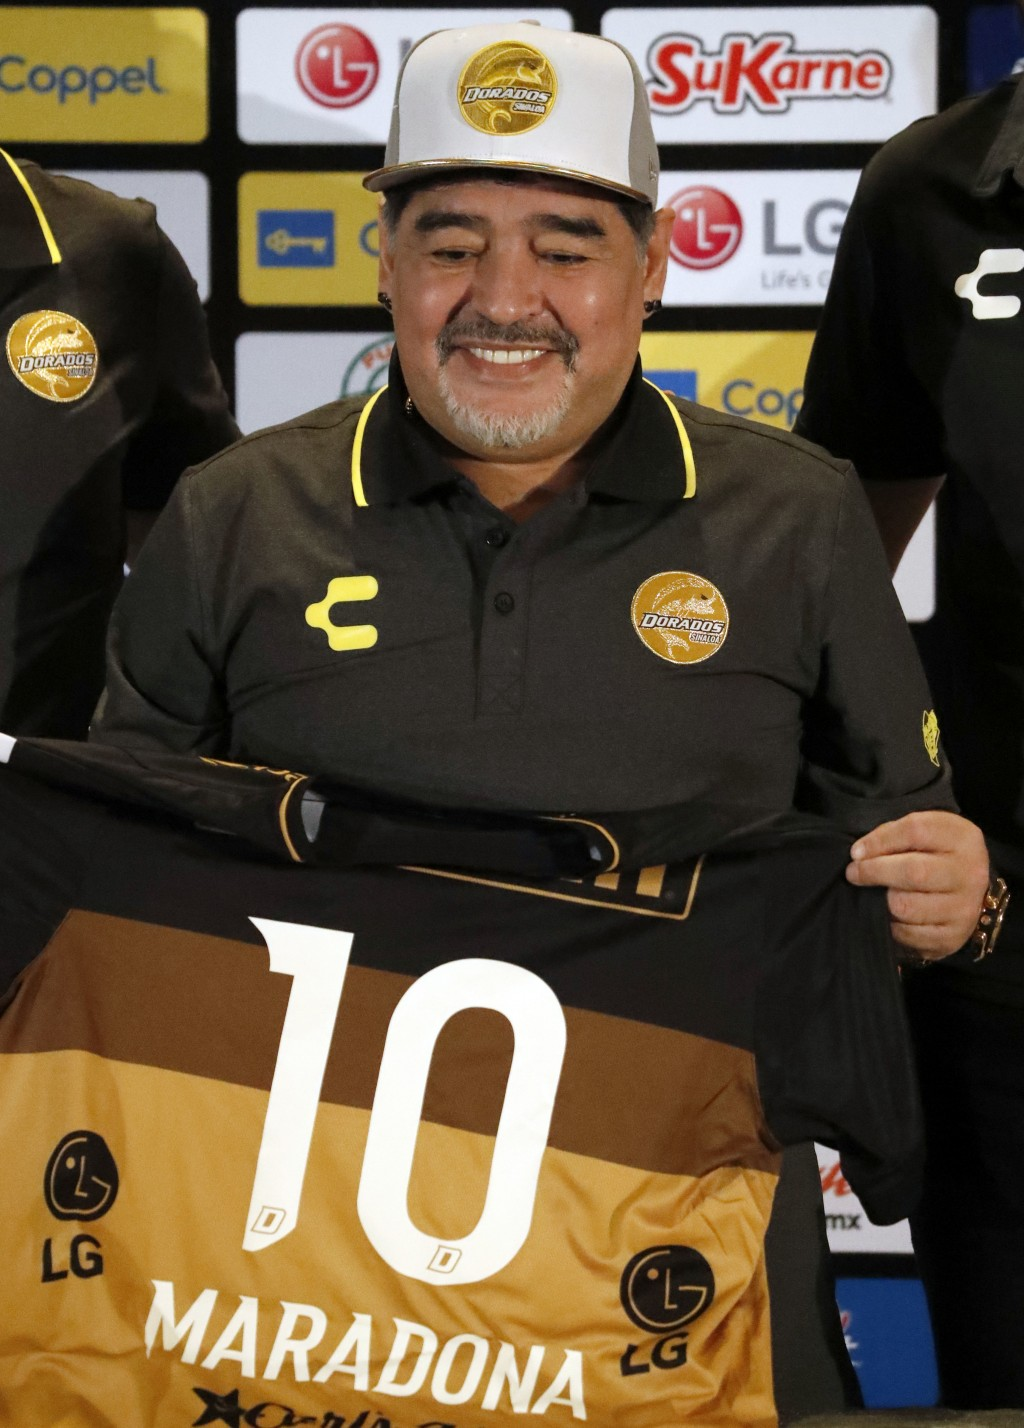 Former soccer great Diego Maradona, shows his team jersey during a press conference where he was presented as the new manager of the Dorados of Sinalo